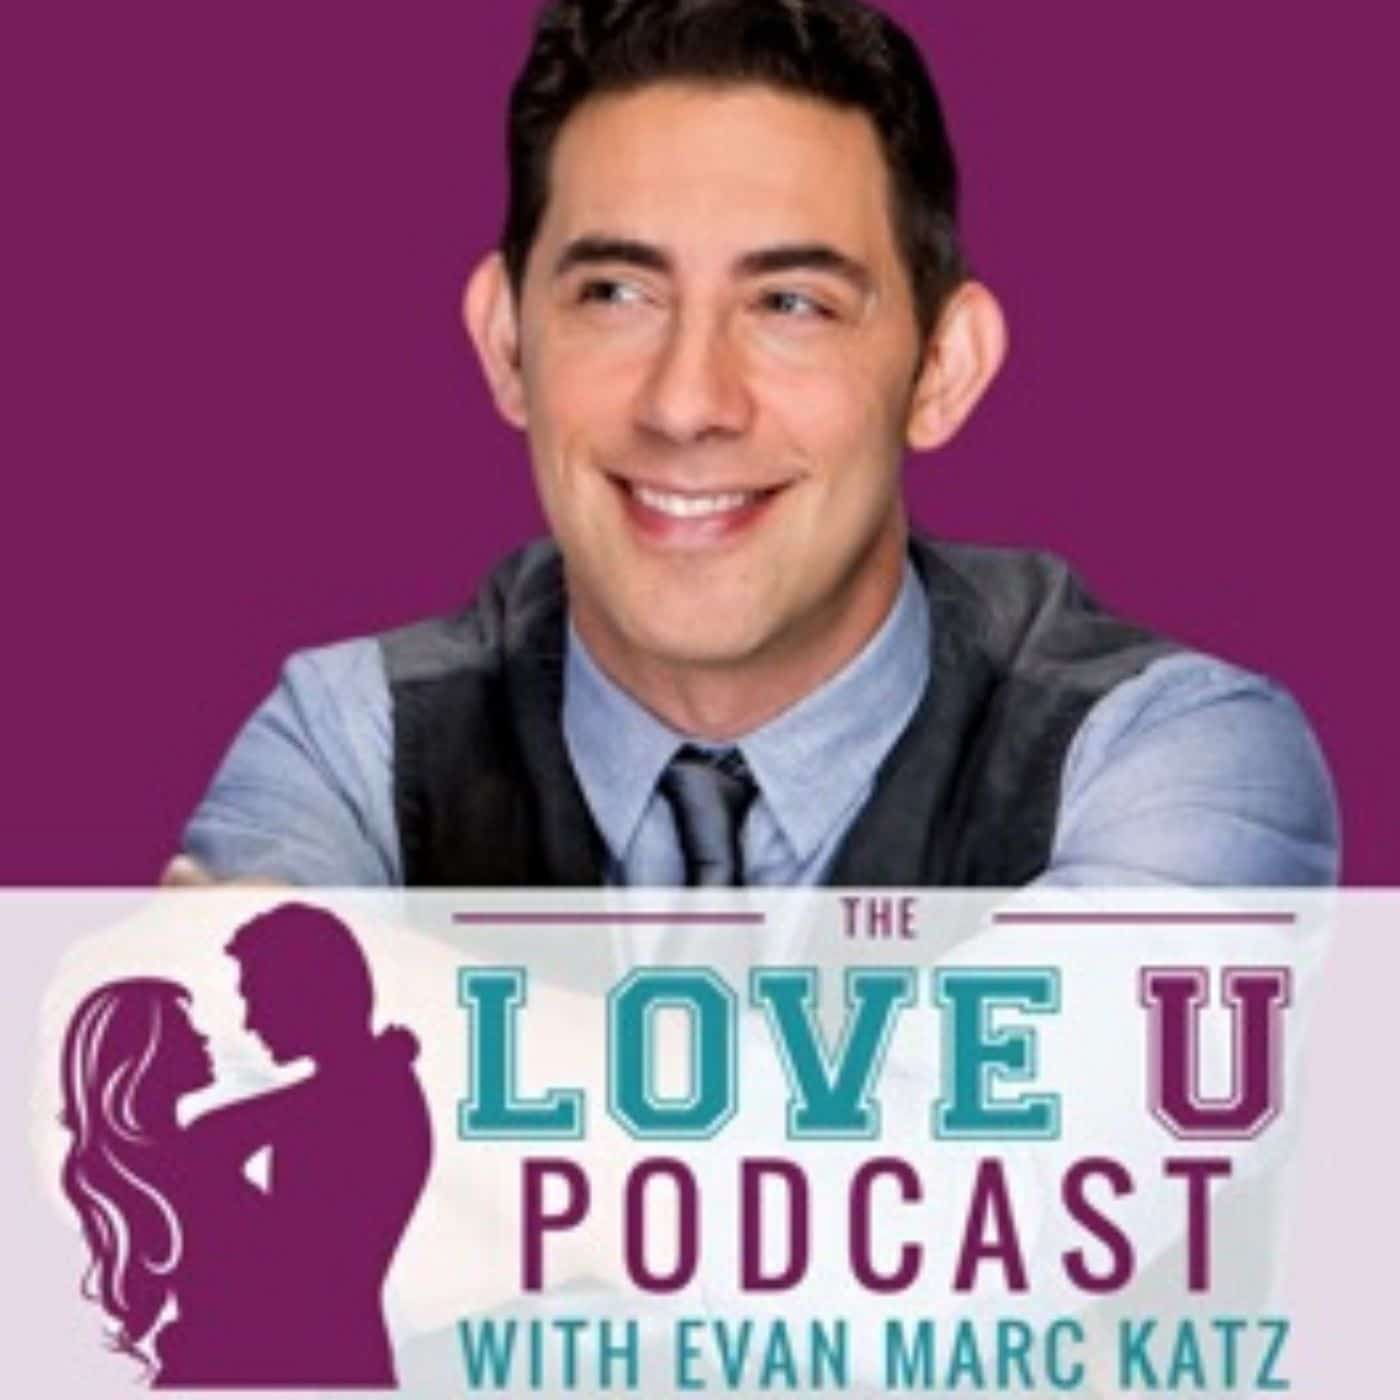 The Love U Podcast with Evan Marc Katz, Dating Coach for Smart, Strong, Successful Women